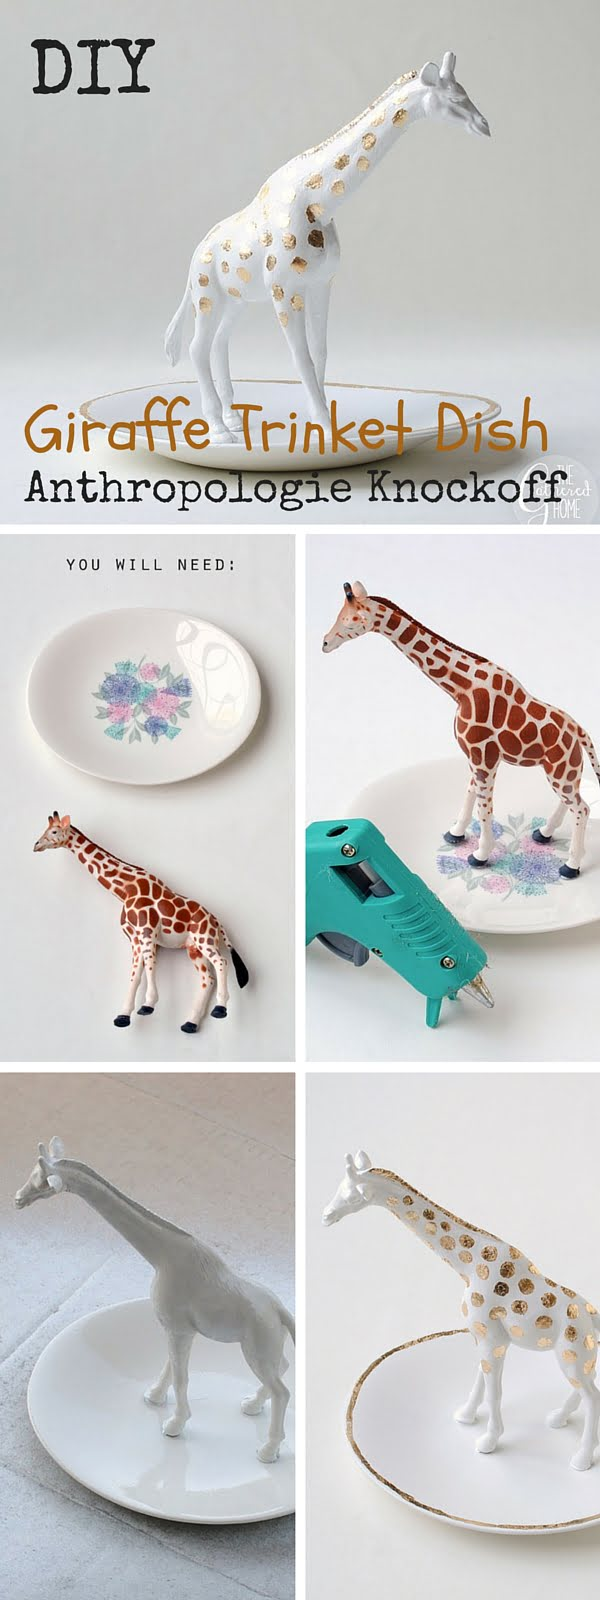 Check out the tutorial:   Giraffe Trinket Dish Knockoff